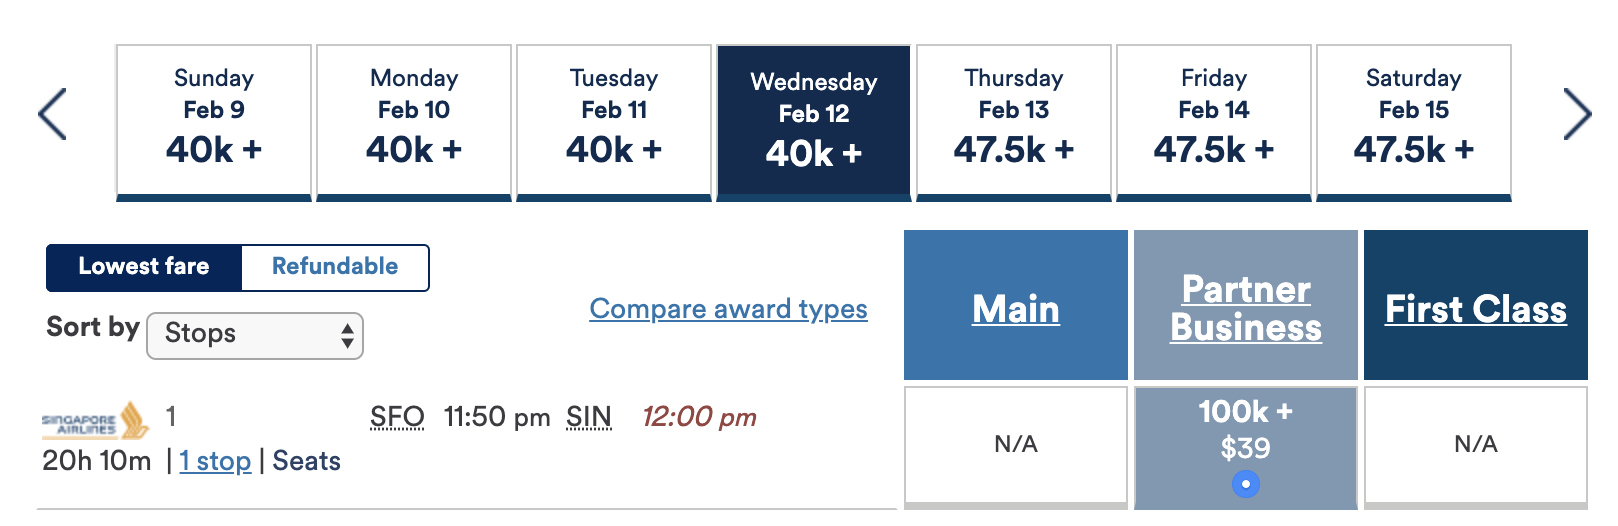 How to book Singapore Airlines awards using Alaska Miles